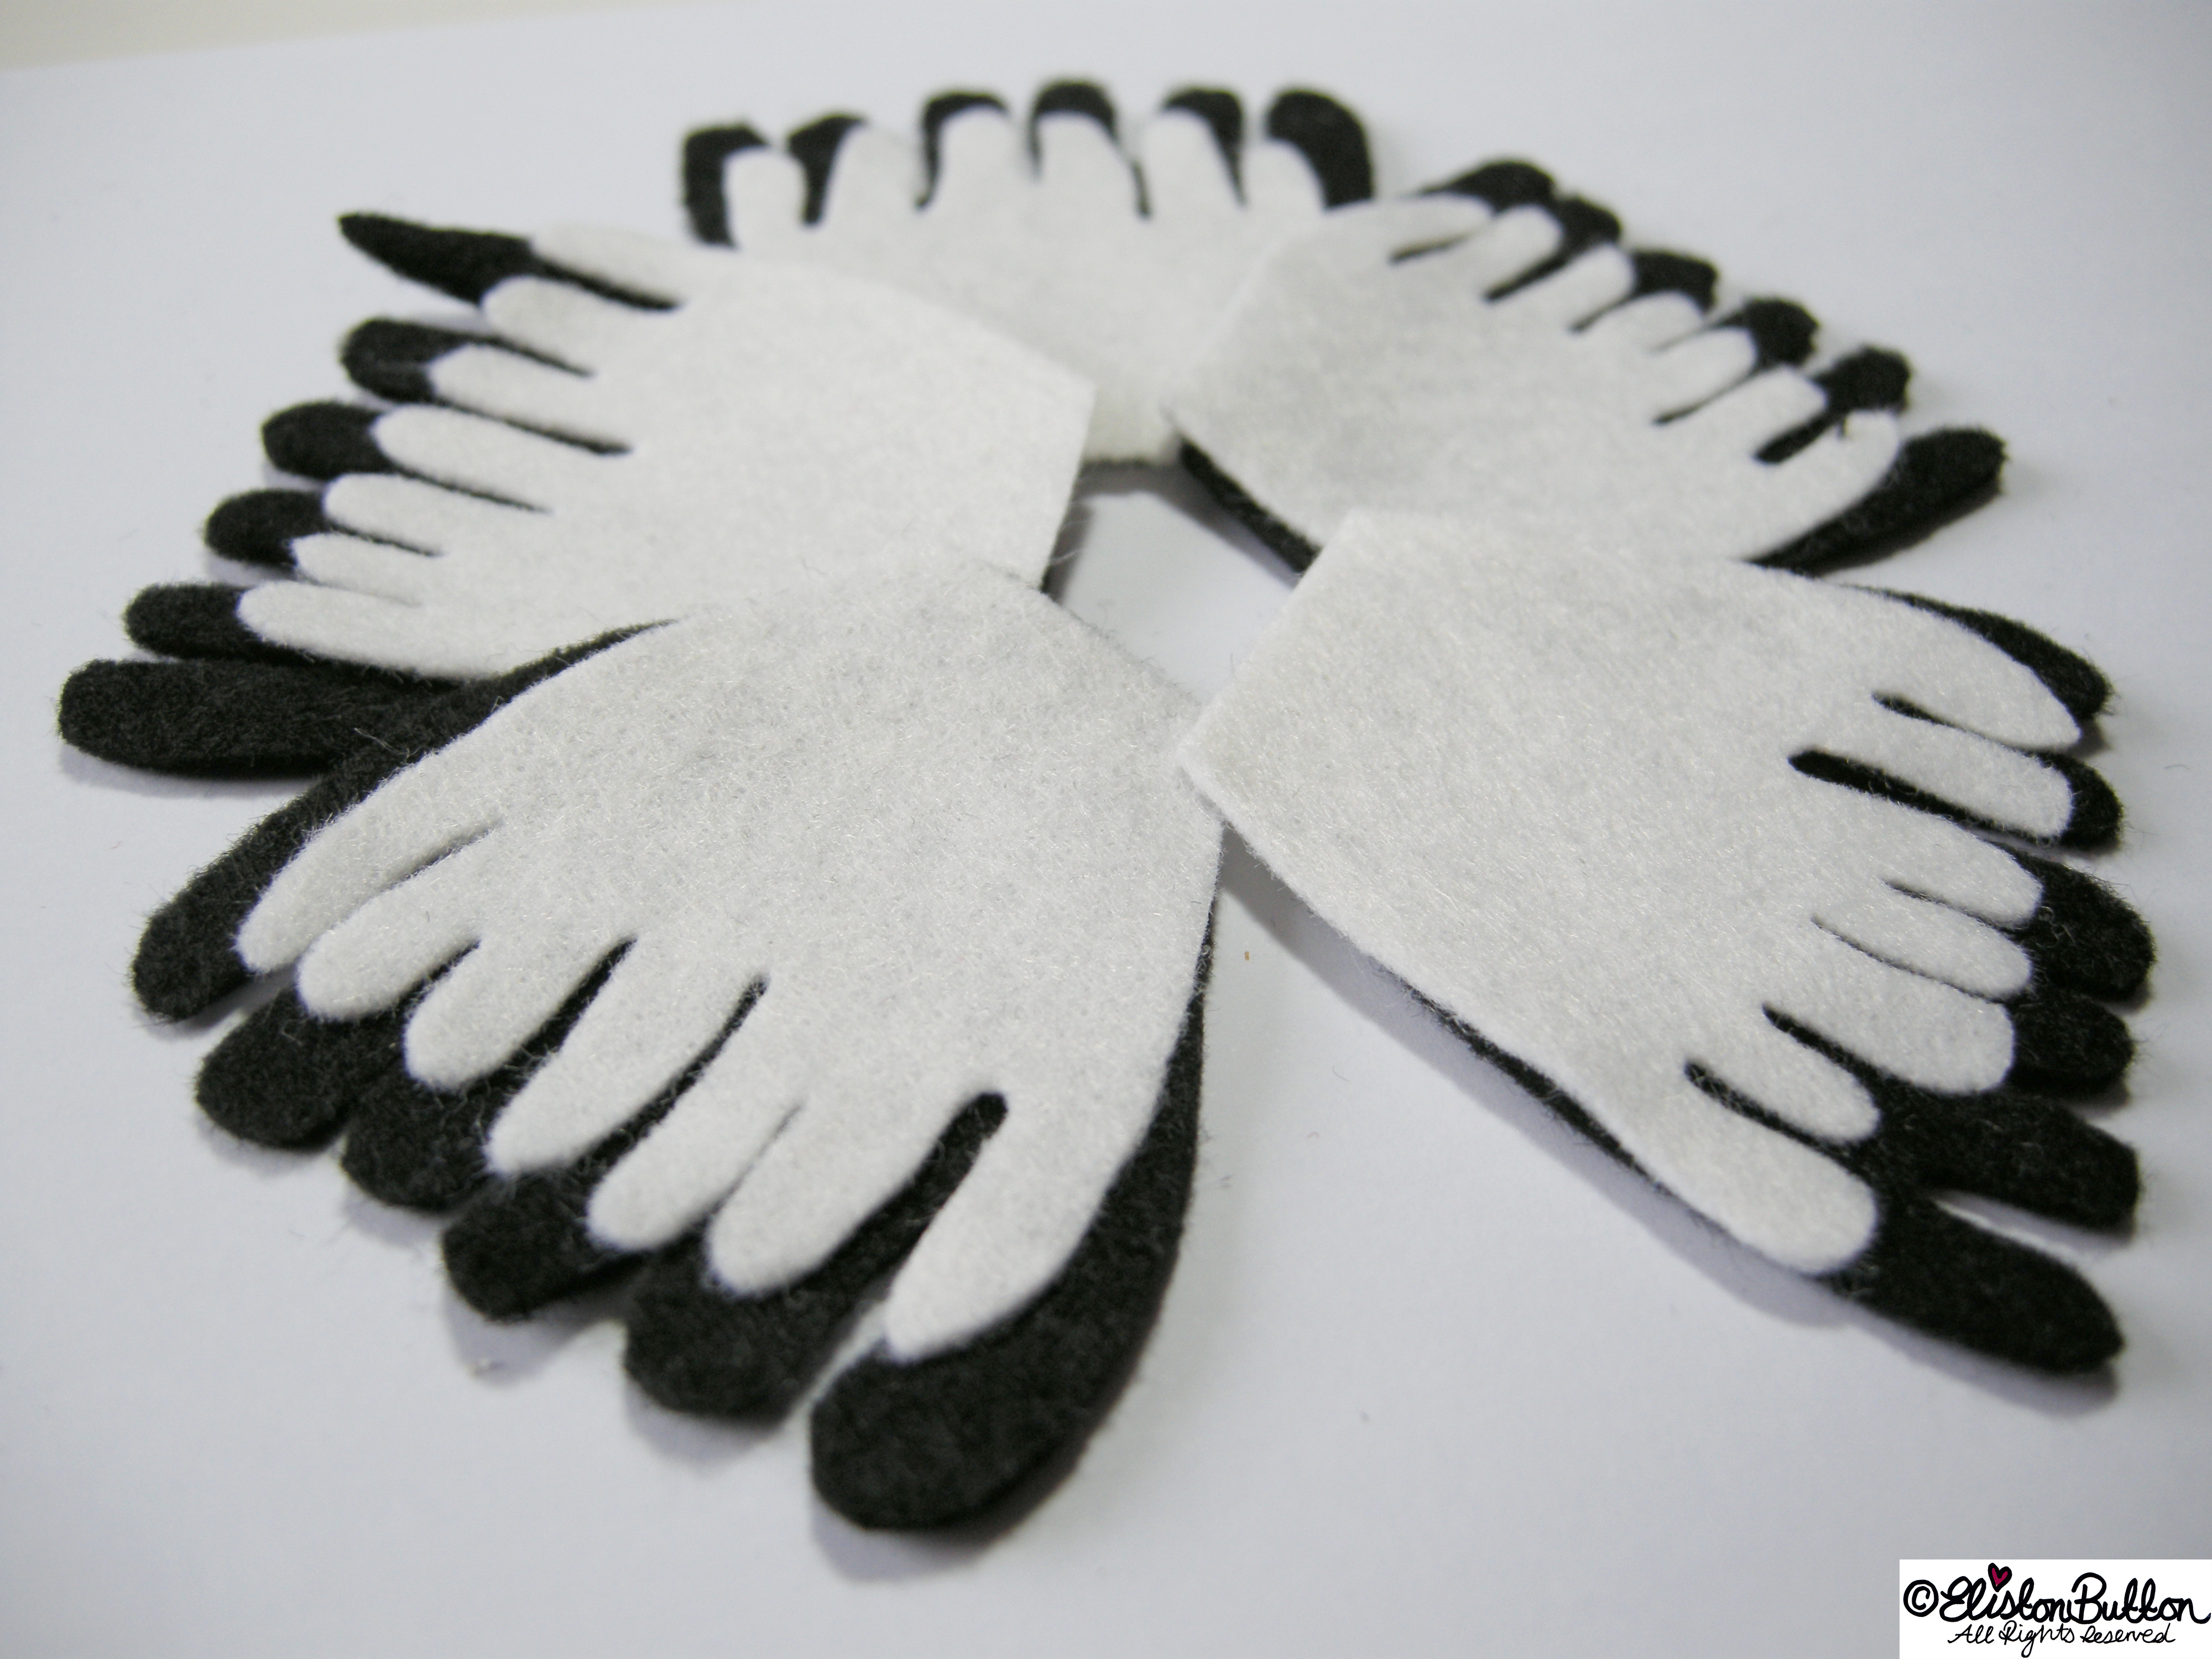 Black and White Felt Hand Cut Petal Shapes in a Flower Shape - 27 Before 27 – Monochrome at www.elistonbutton.com - Eliston Button - That Crafty Kid – Art, Design, Craft & Adventure.